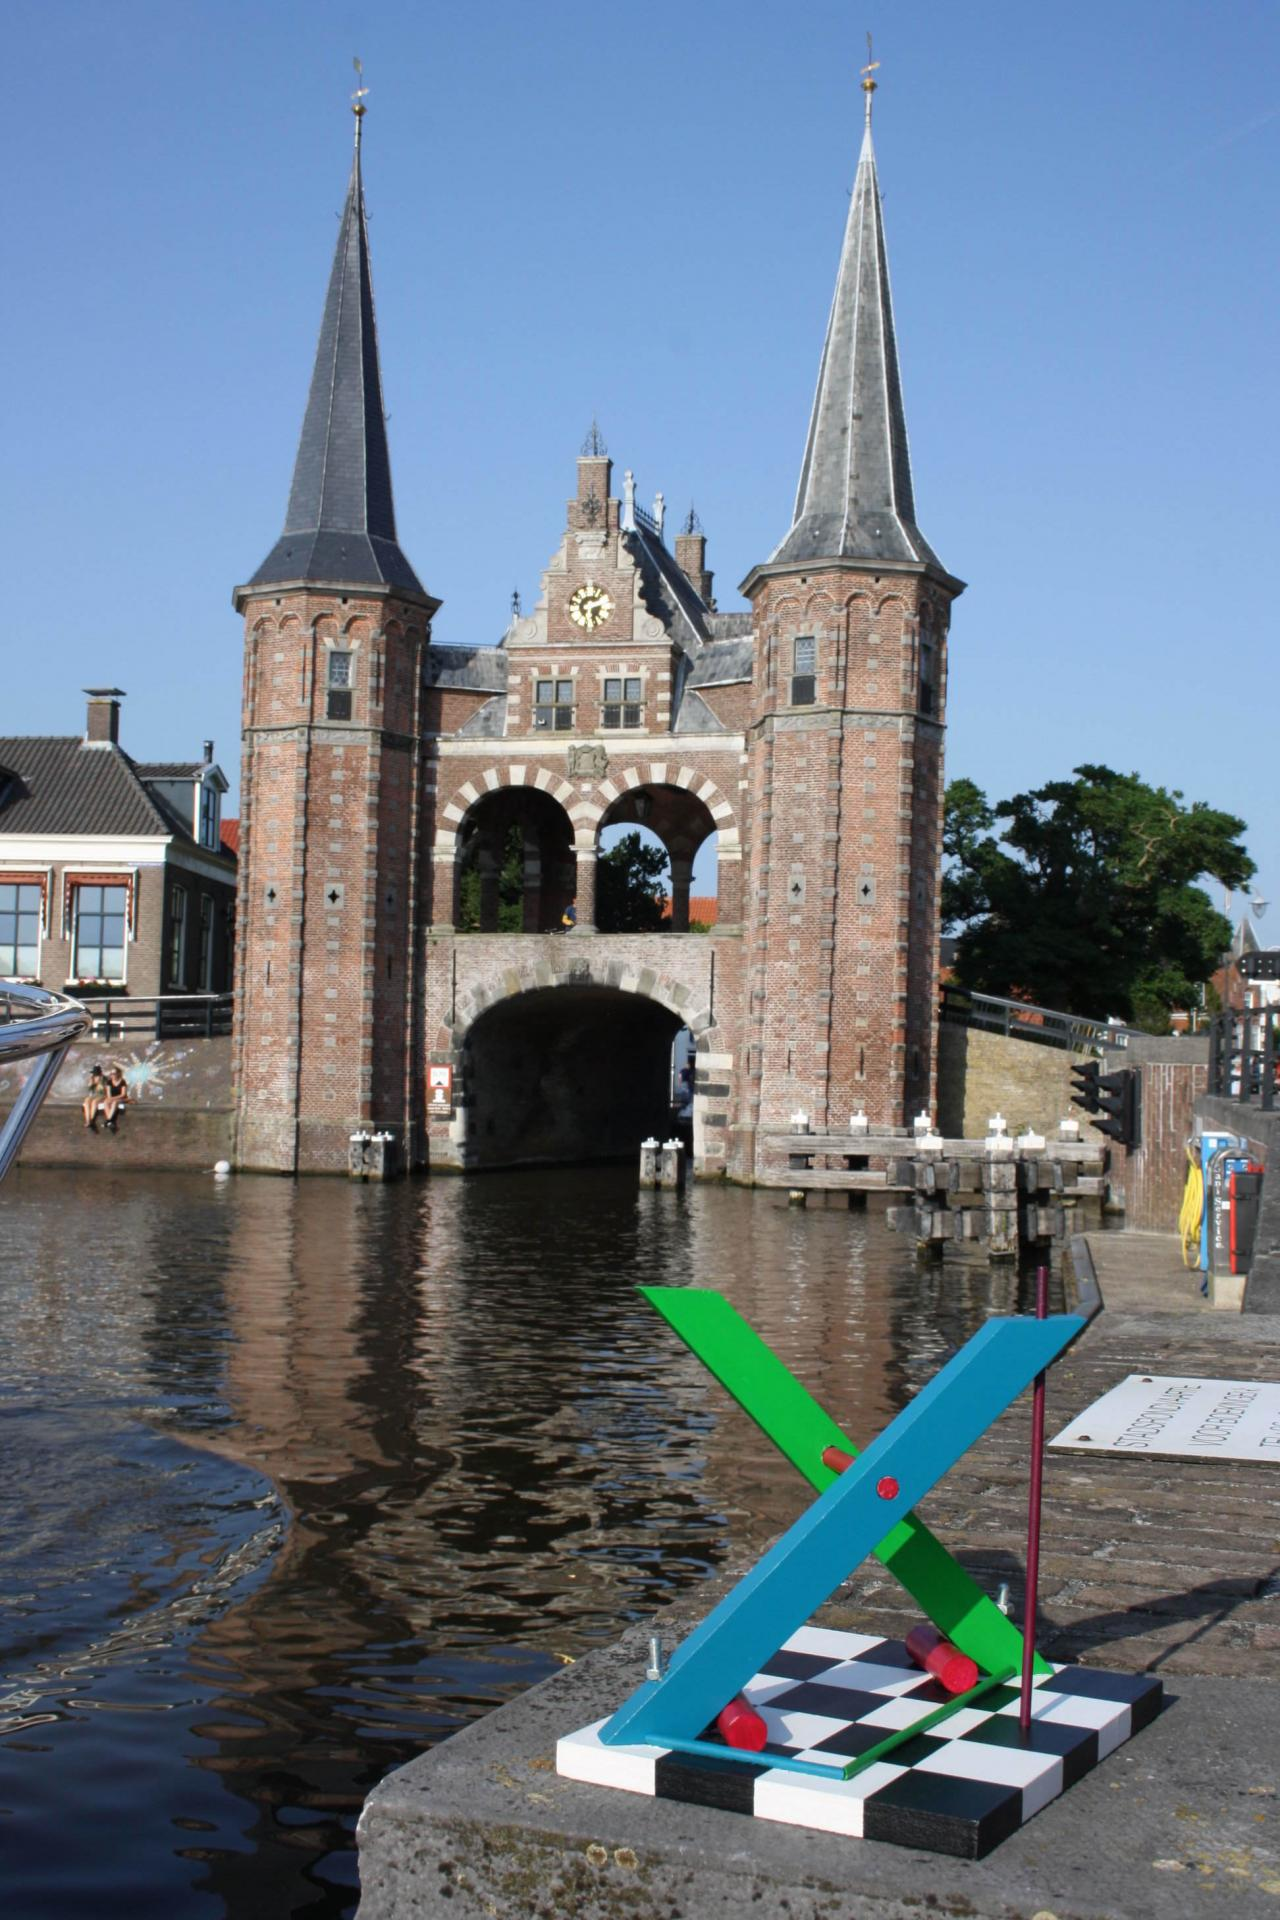 X by Johannes BlonK in Sneek, The Netherlands, 2015